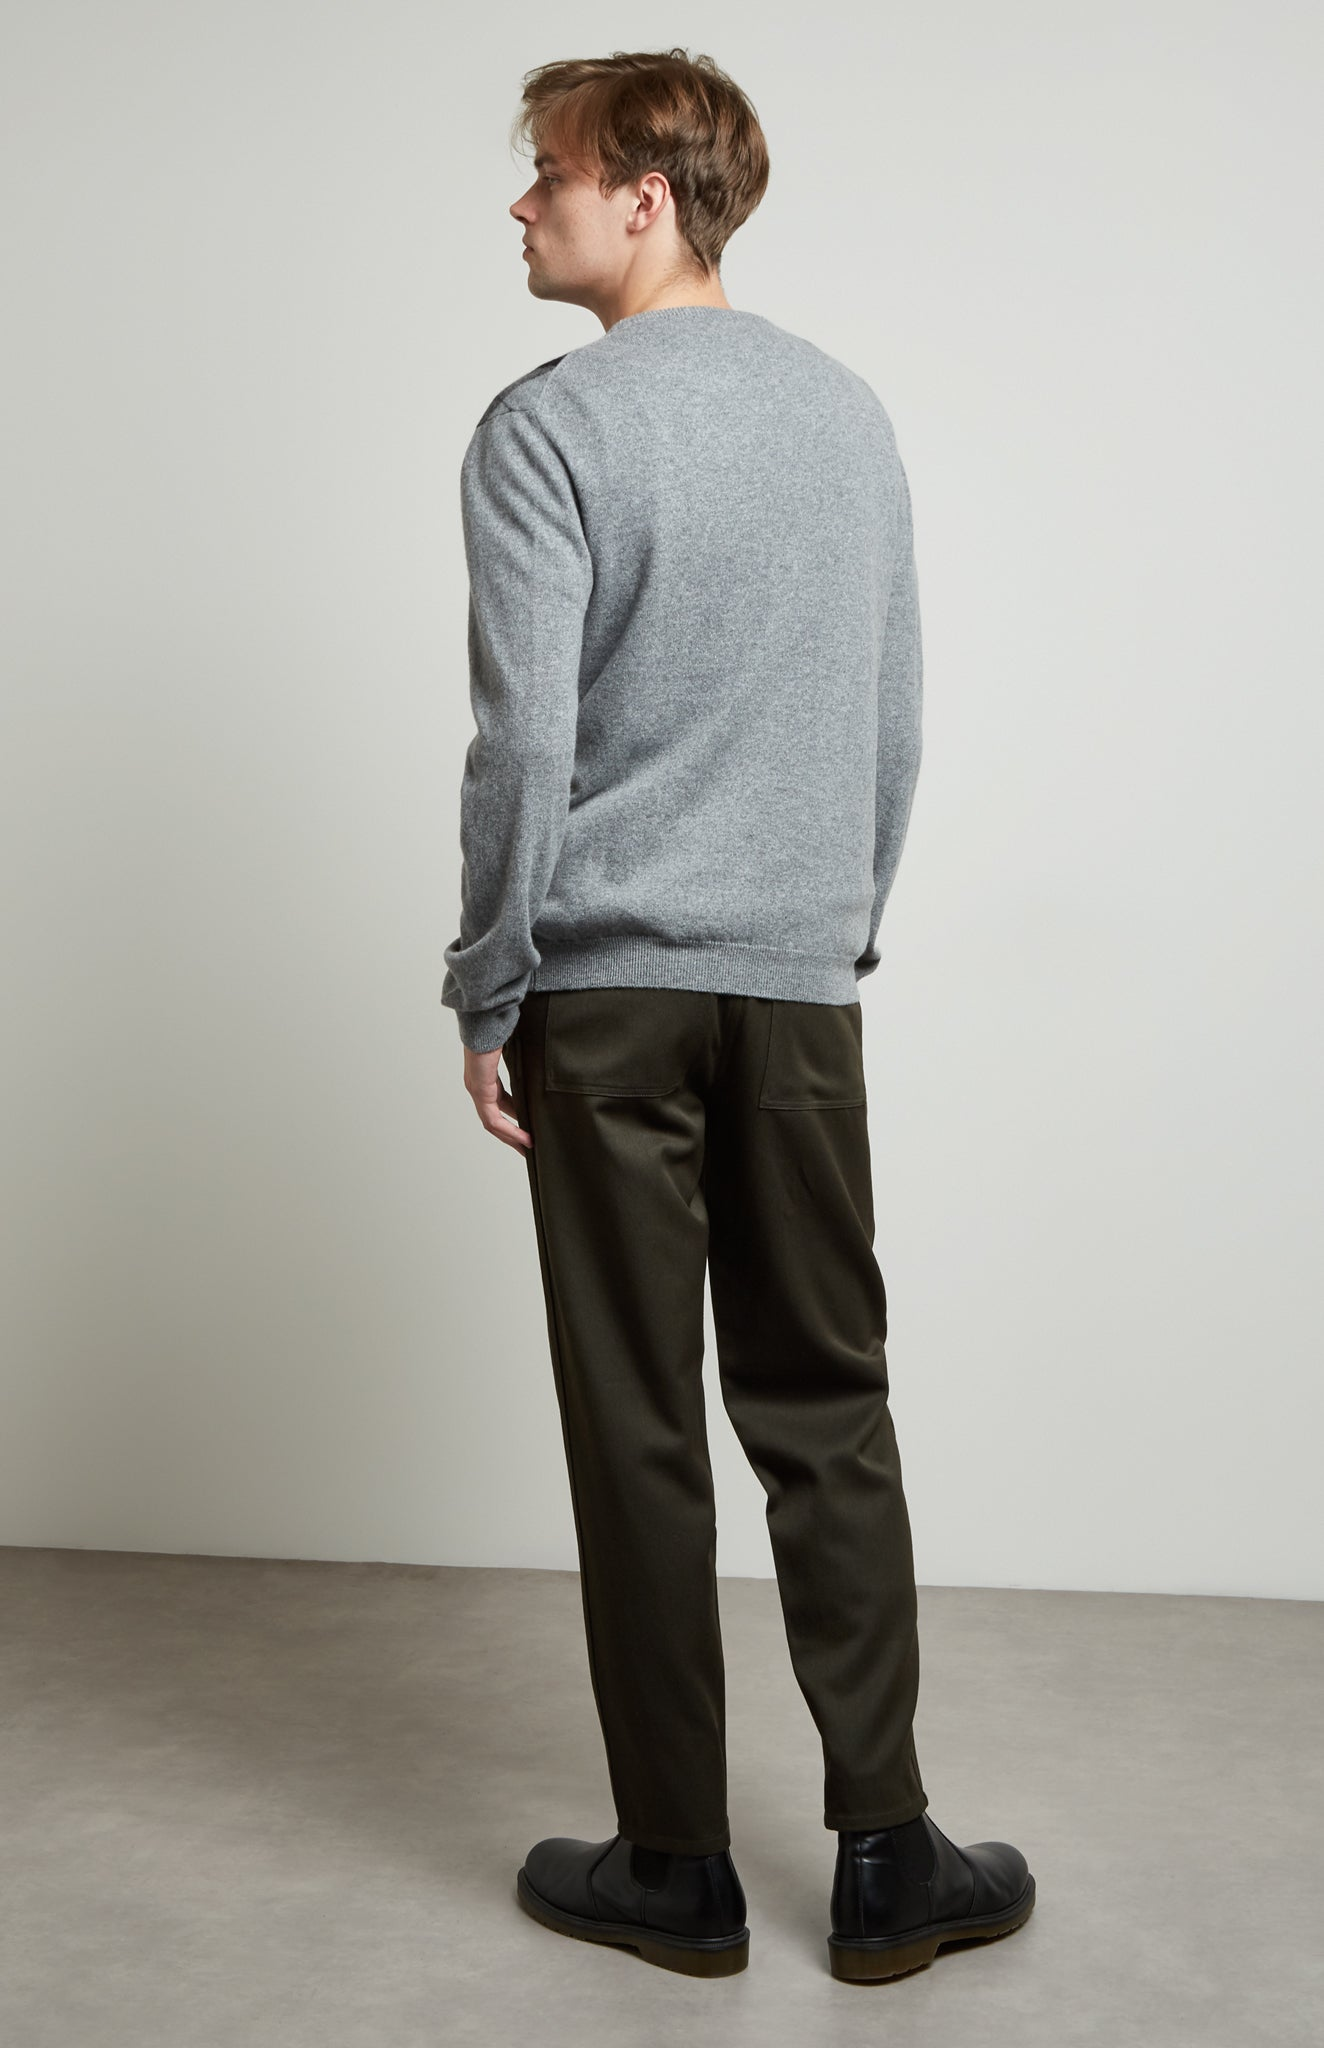 Round Neck Argyle Stripe Jumper In Flannel Grey/Graphite